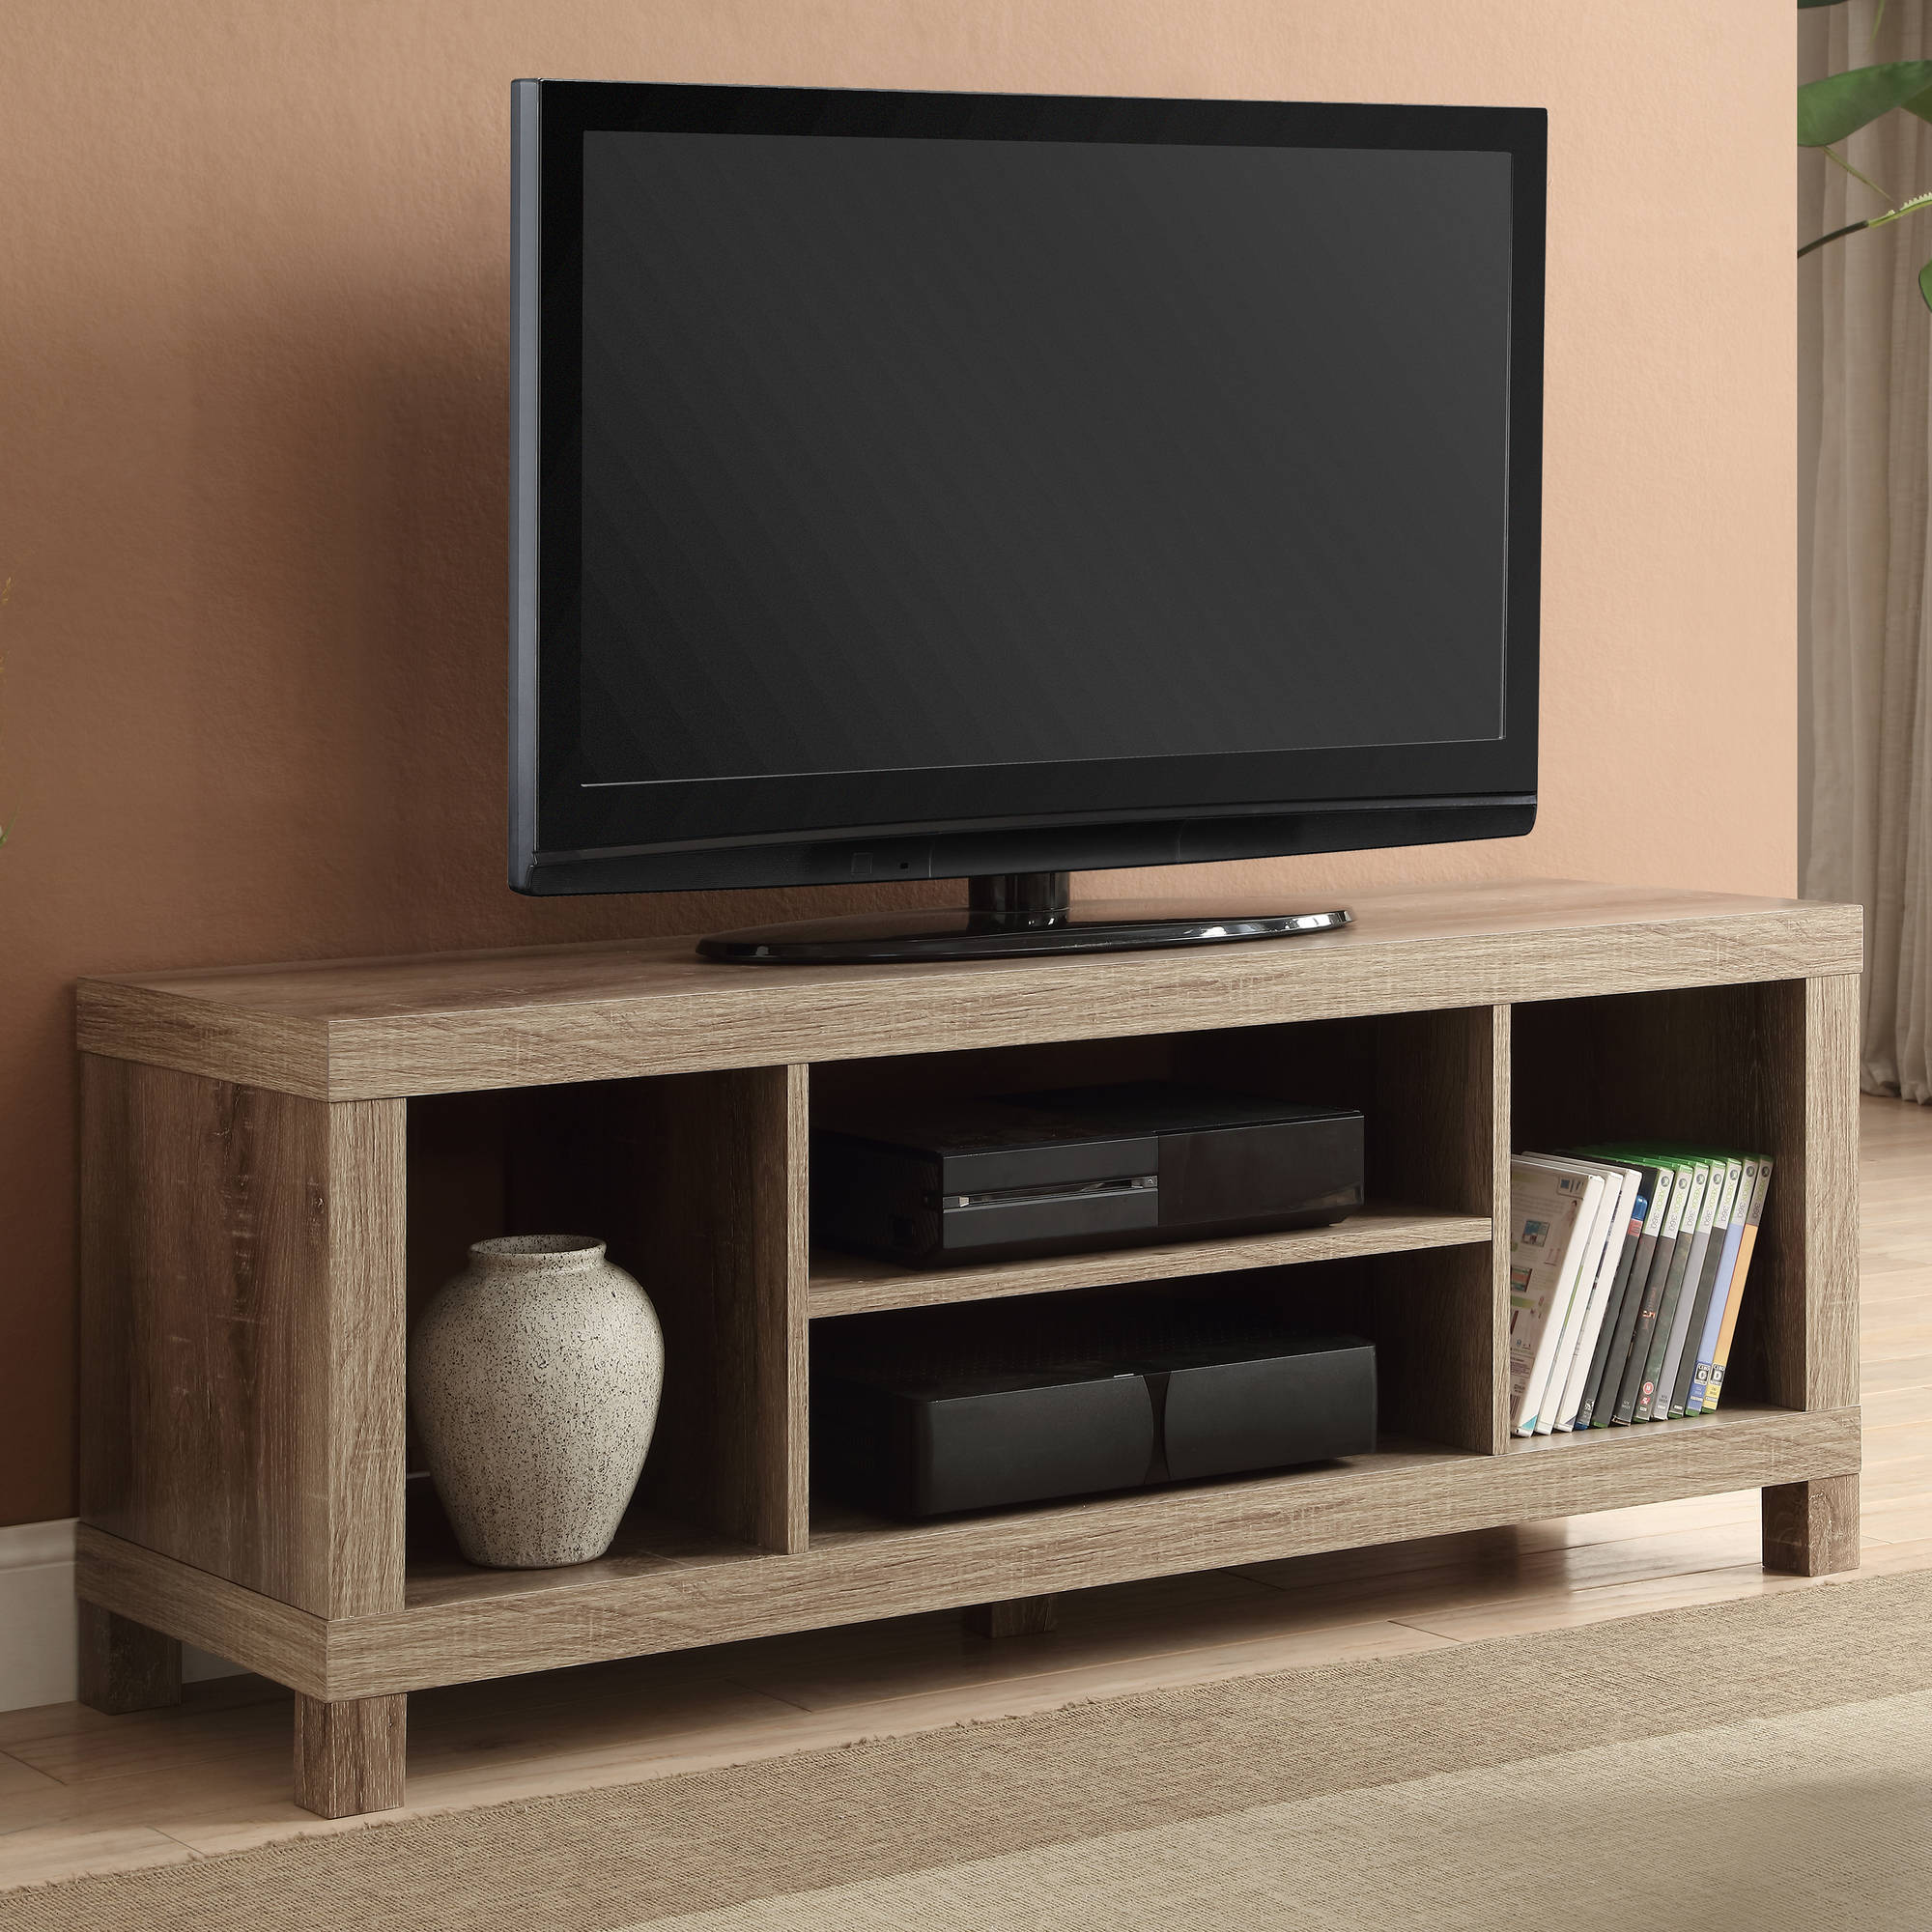 tv stand table for flat screens living room furniture with shelves wood weathere ebay. Black Bedroom Furniture Sets. Home Design Ideas